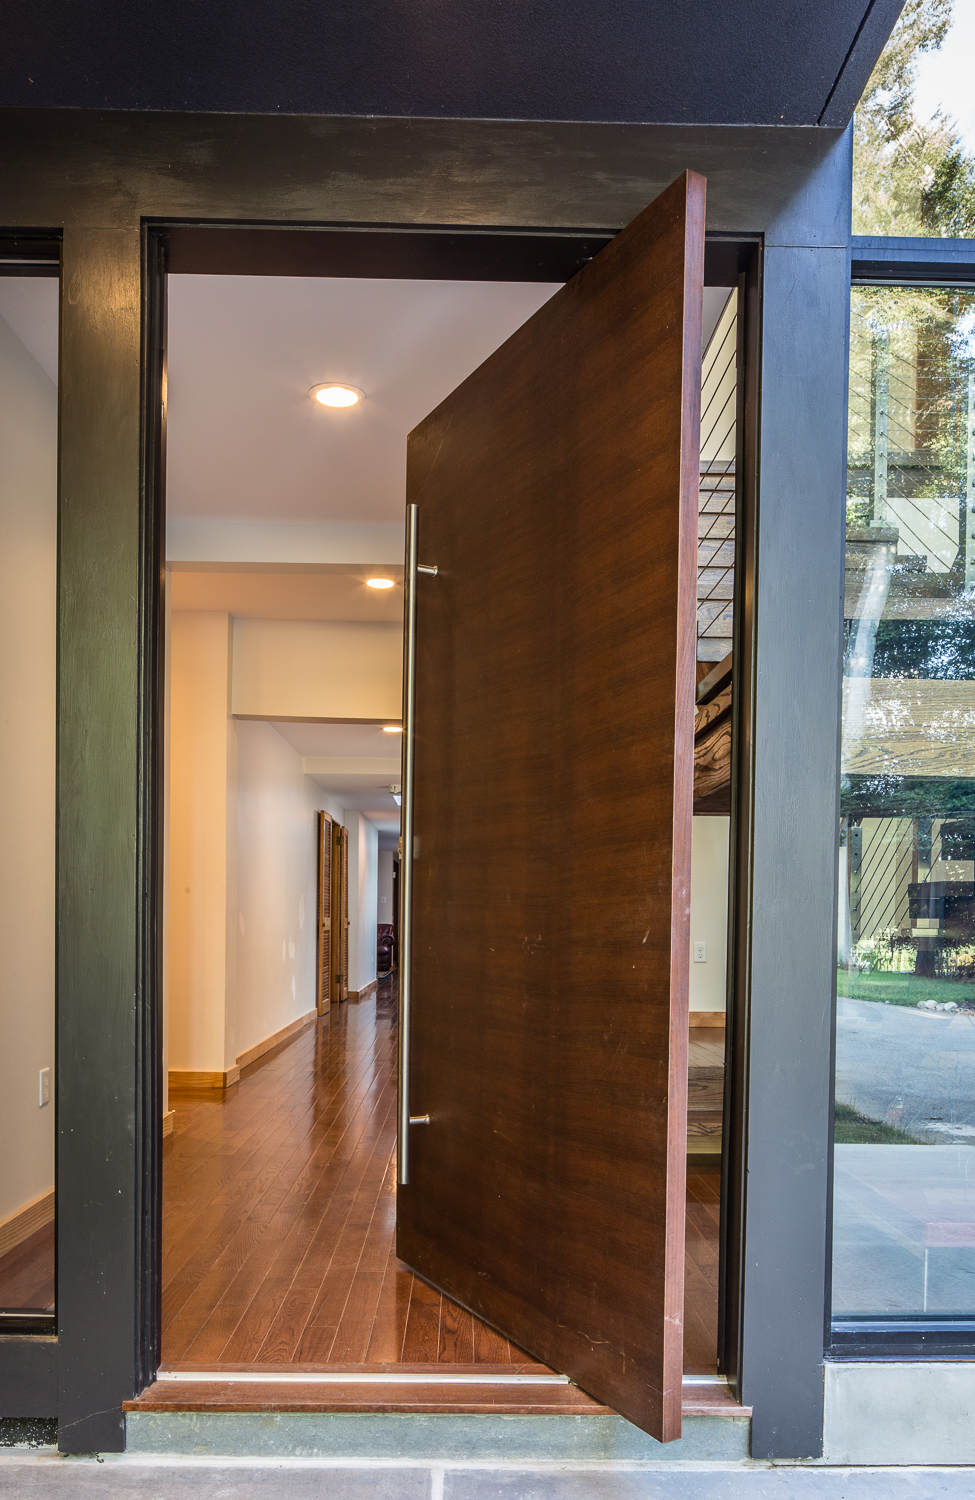 Modern Heavy Door & architecture u2014 Aliza Schlabach Photography